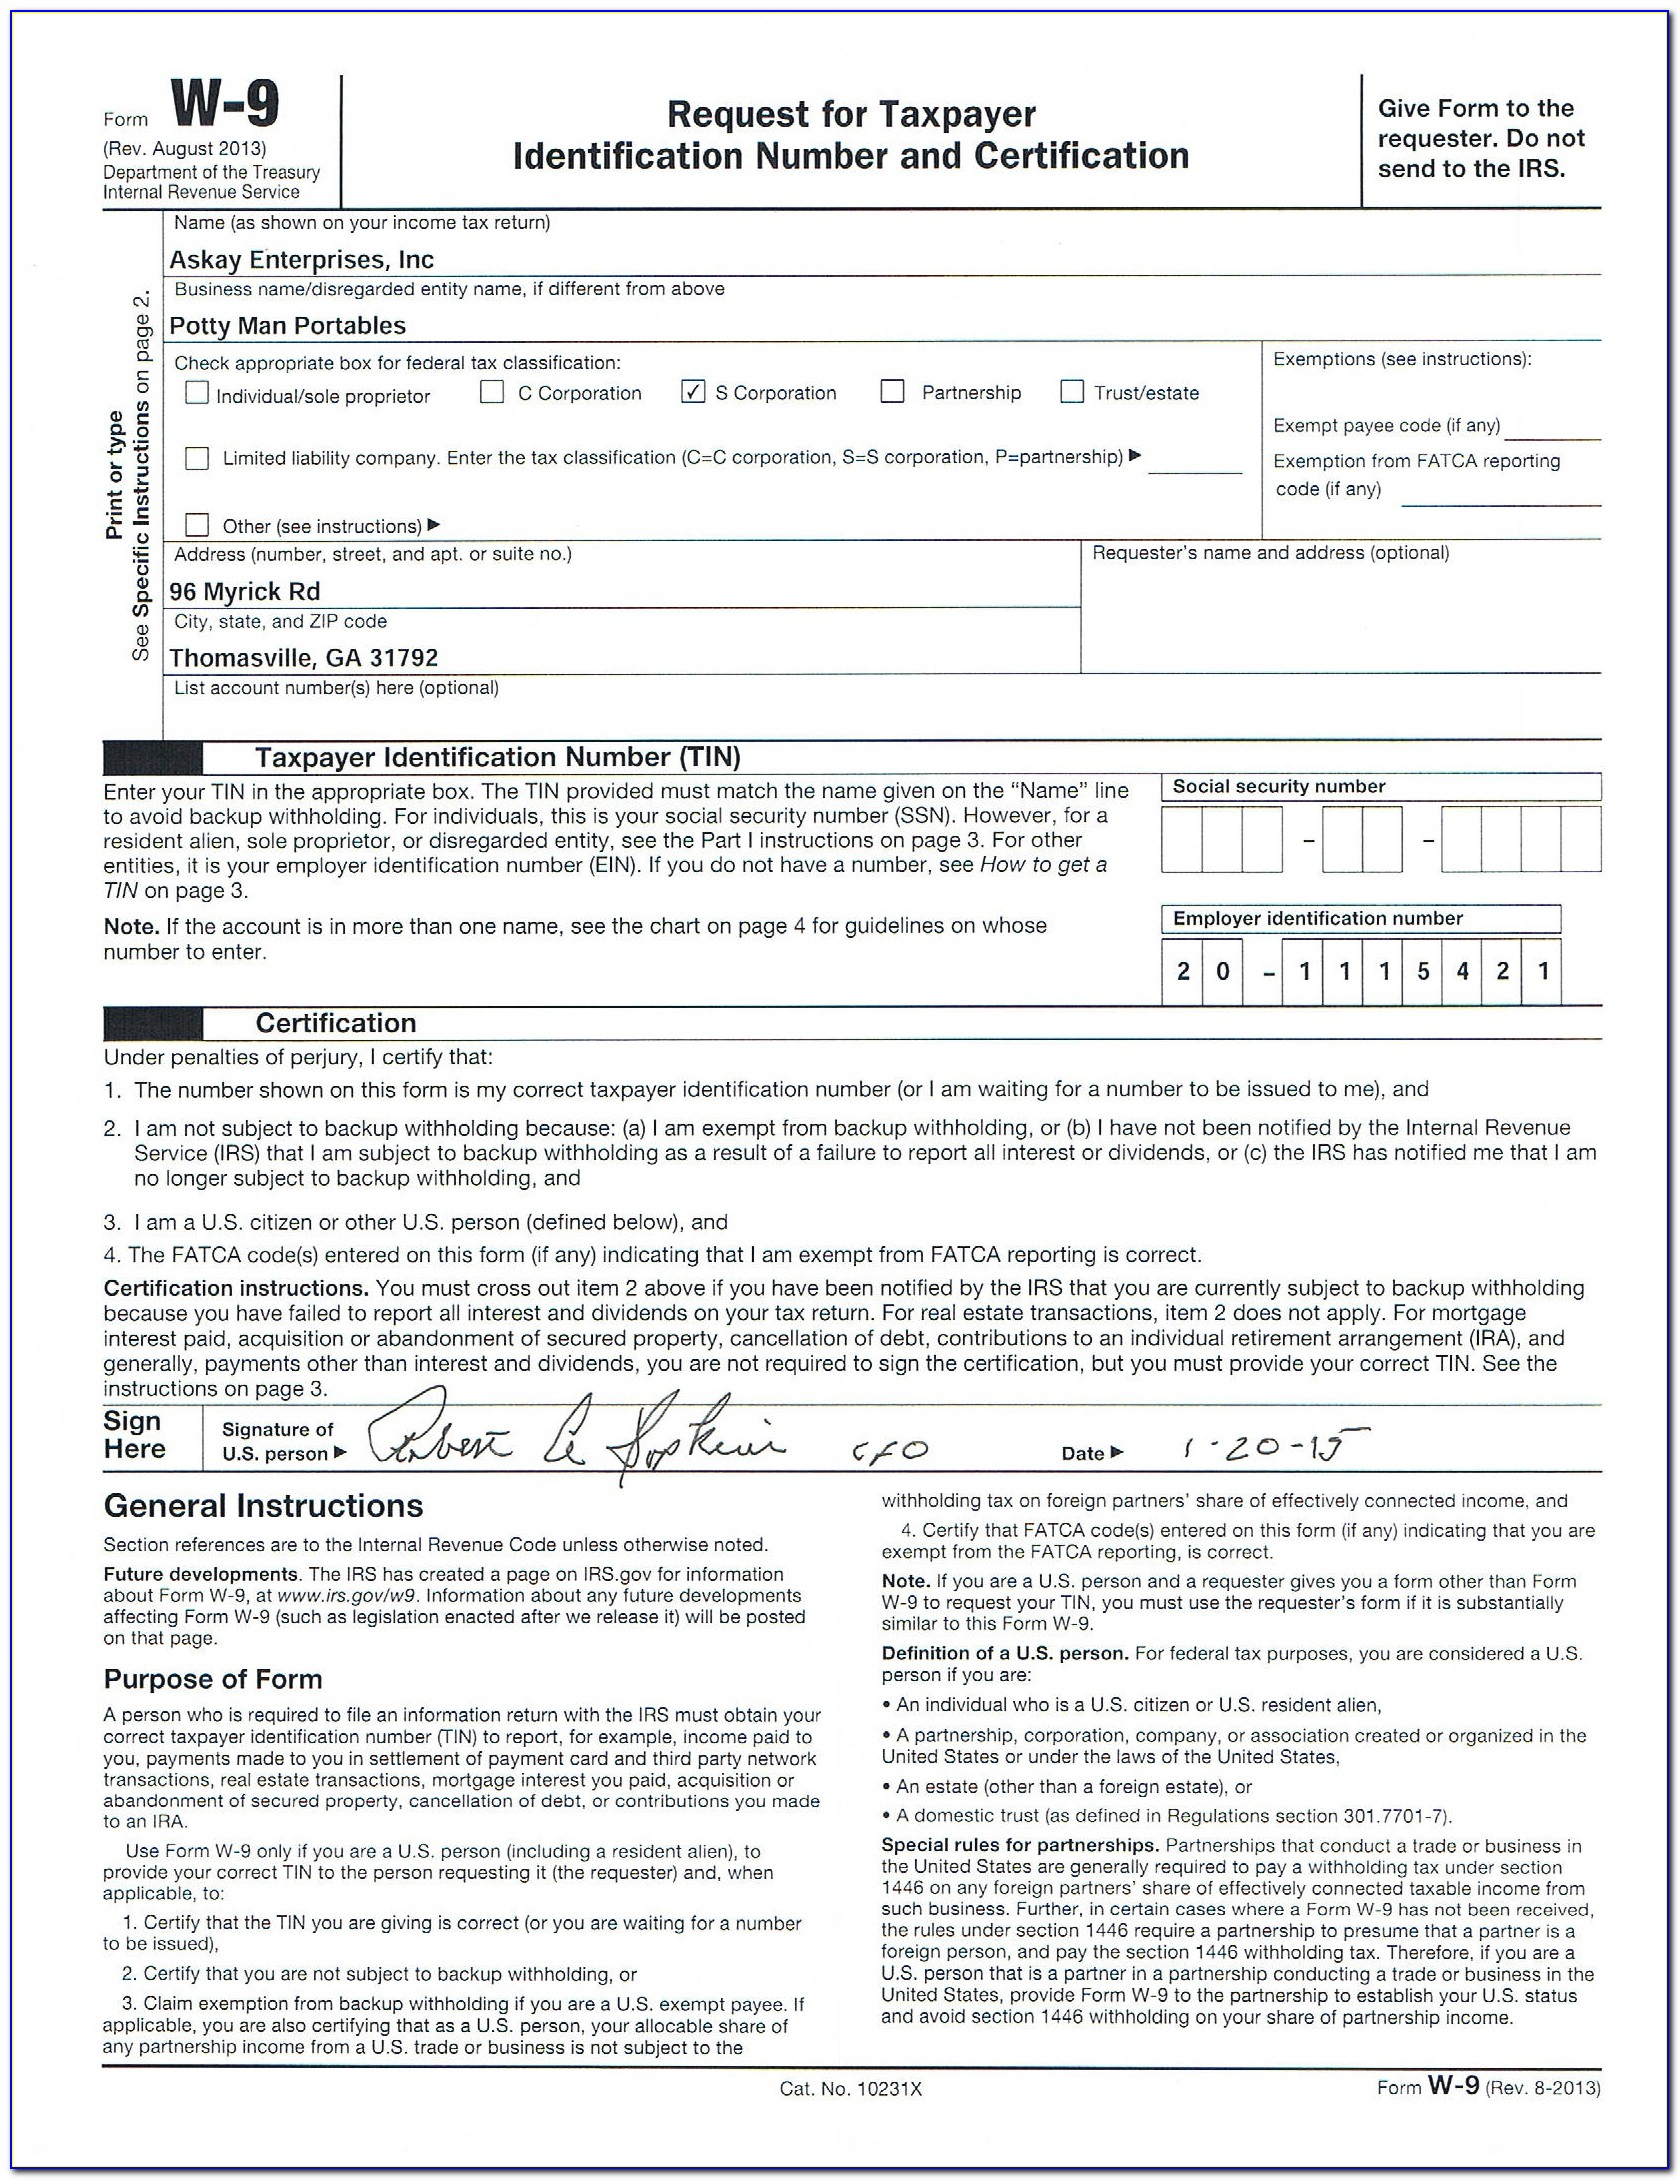 W9 Free Printable Form 2016 | Vincegray2014 throughout Free W 9 Form Printable